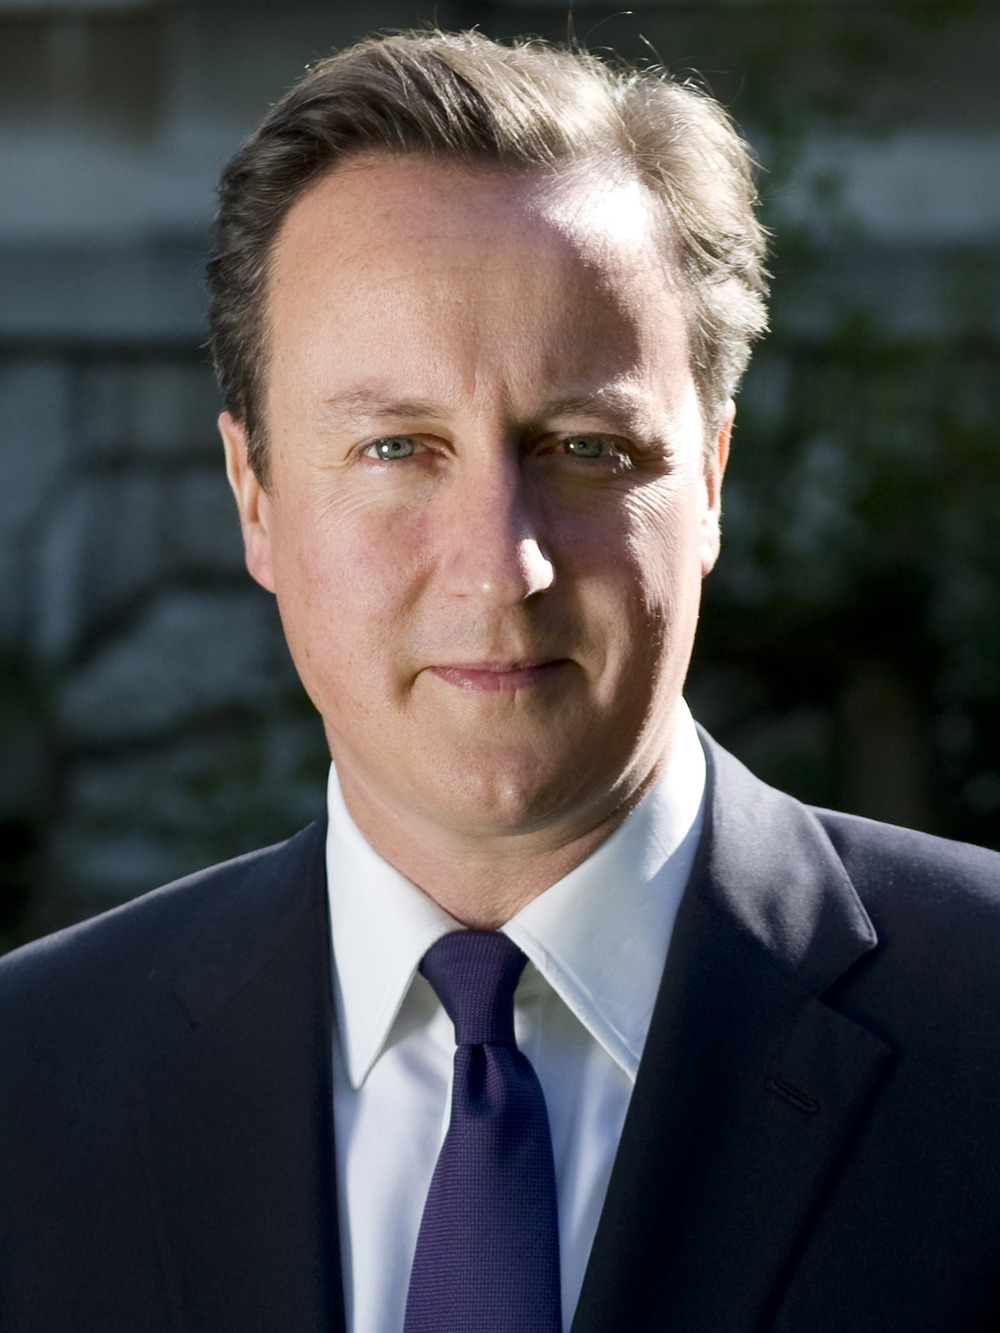 British Prime Minister David Cameron. Credit: Wikimedia Commons.